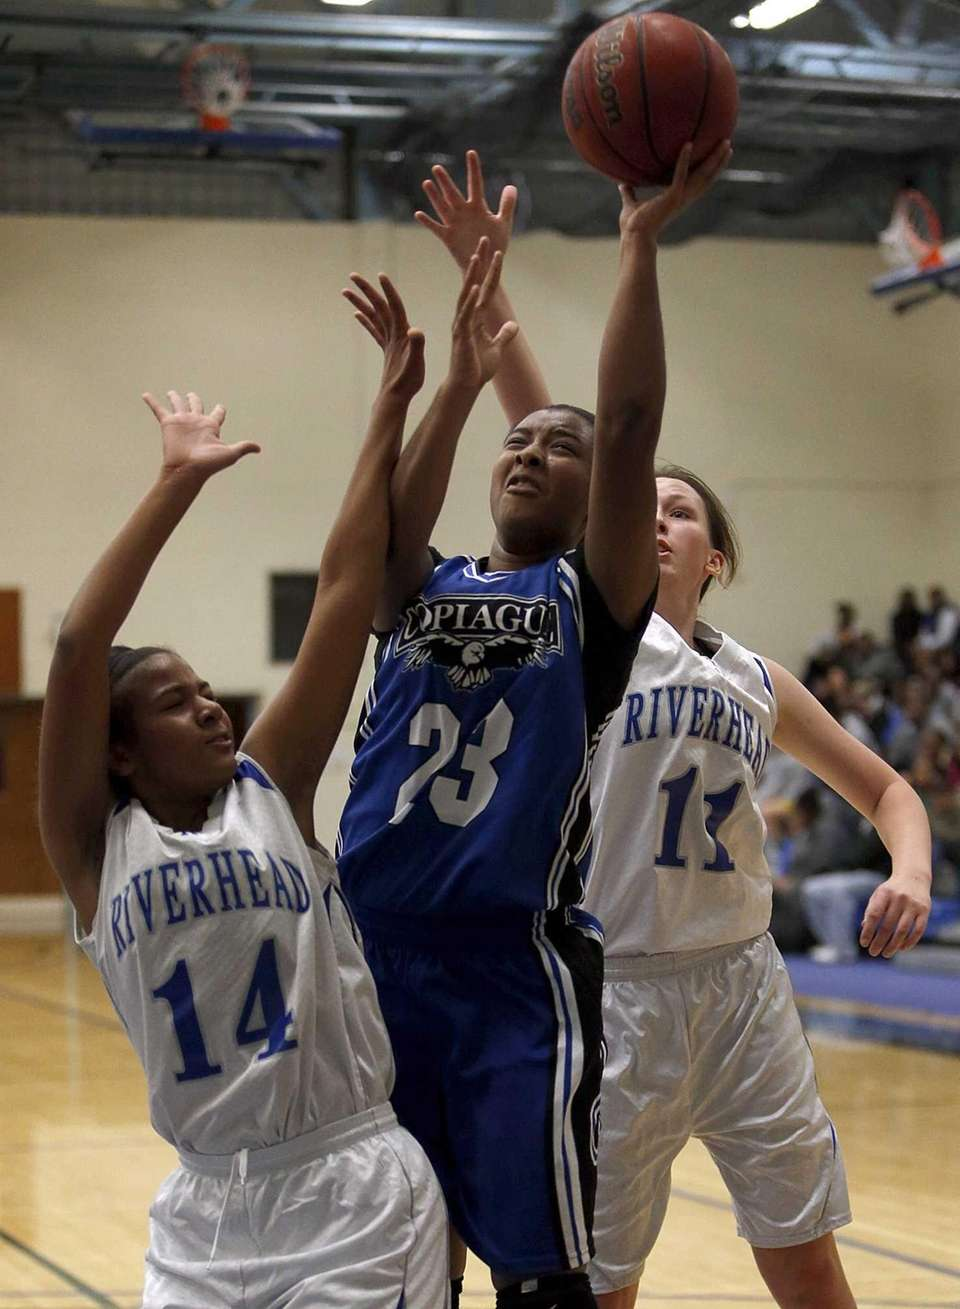 Copiague's I'Asia O'Garro drives to the hoop with